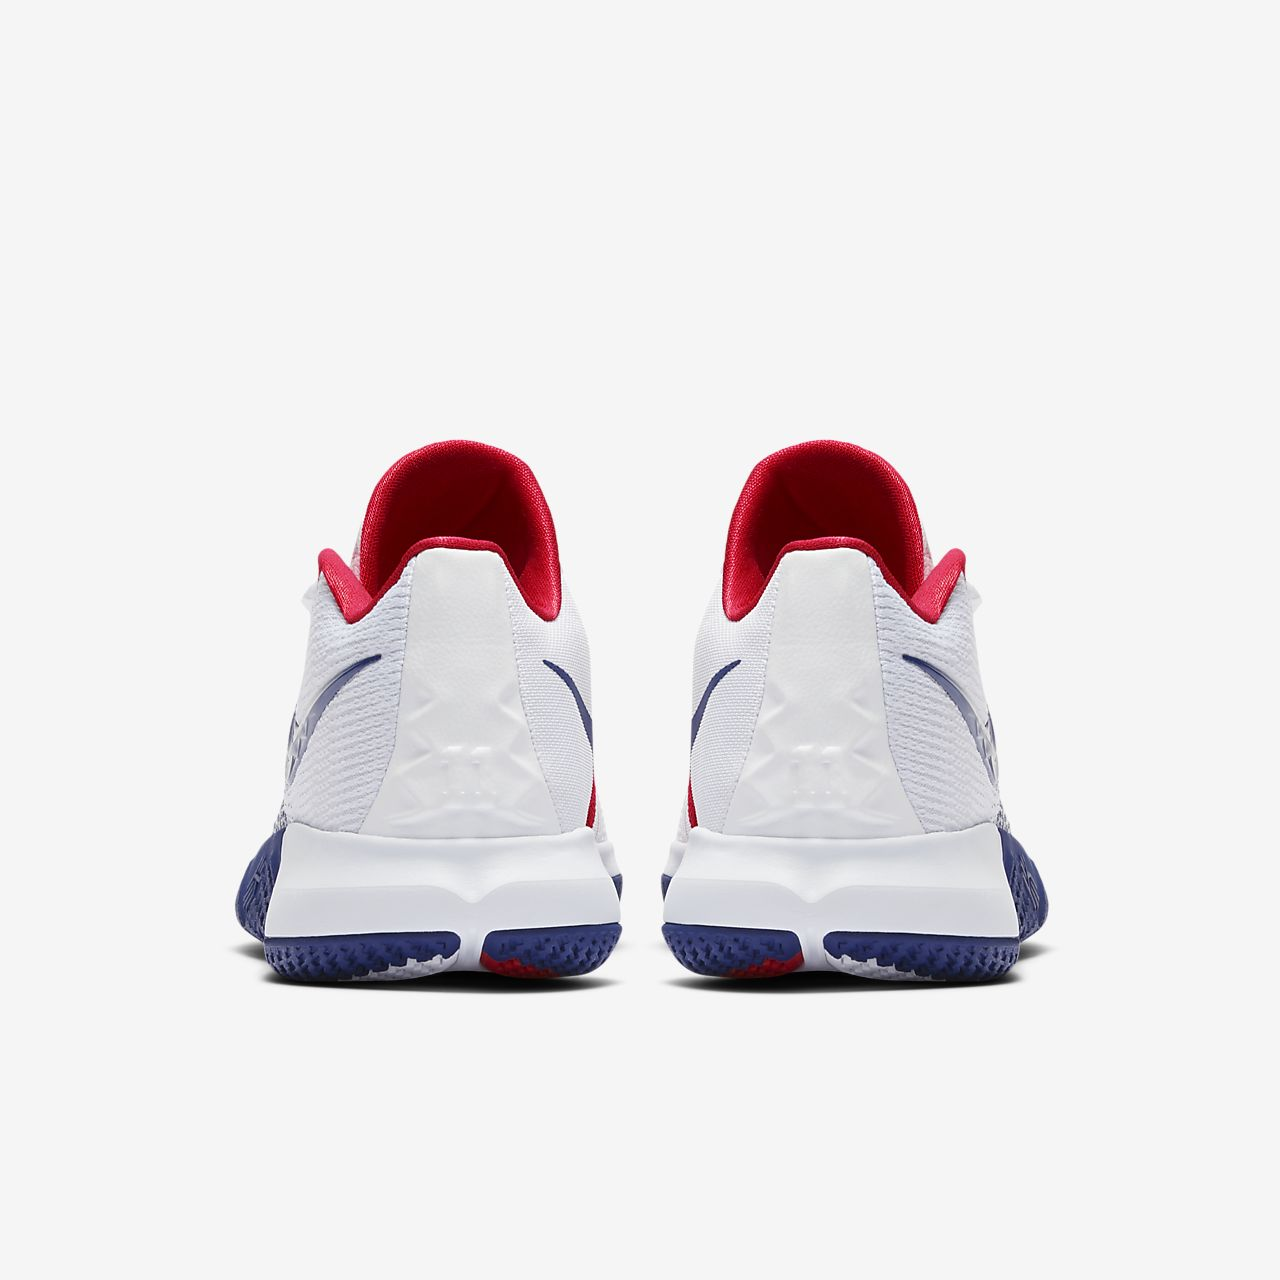 5bef9d8eafdcb5 Low Resolution Kyrie Flytrap Basketball Shoe Kyrie Flytrap Basketball Shoe